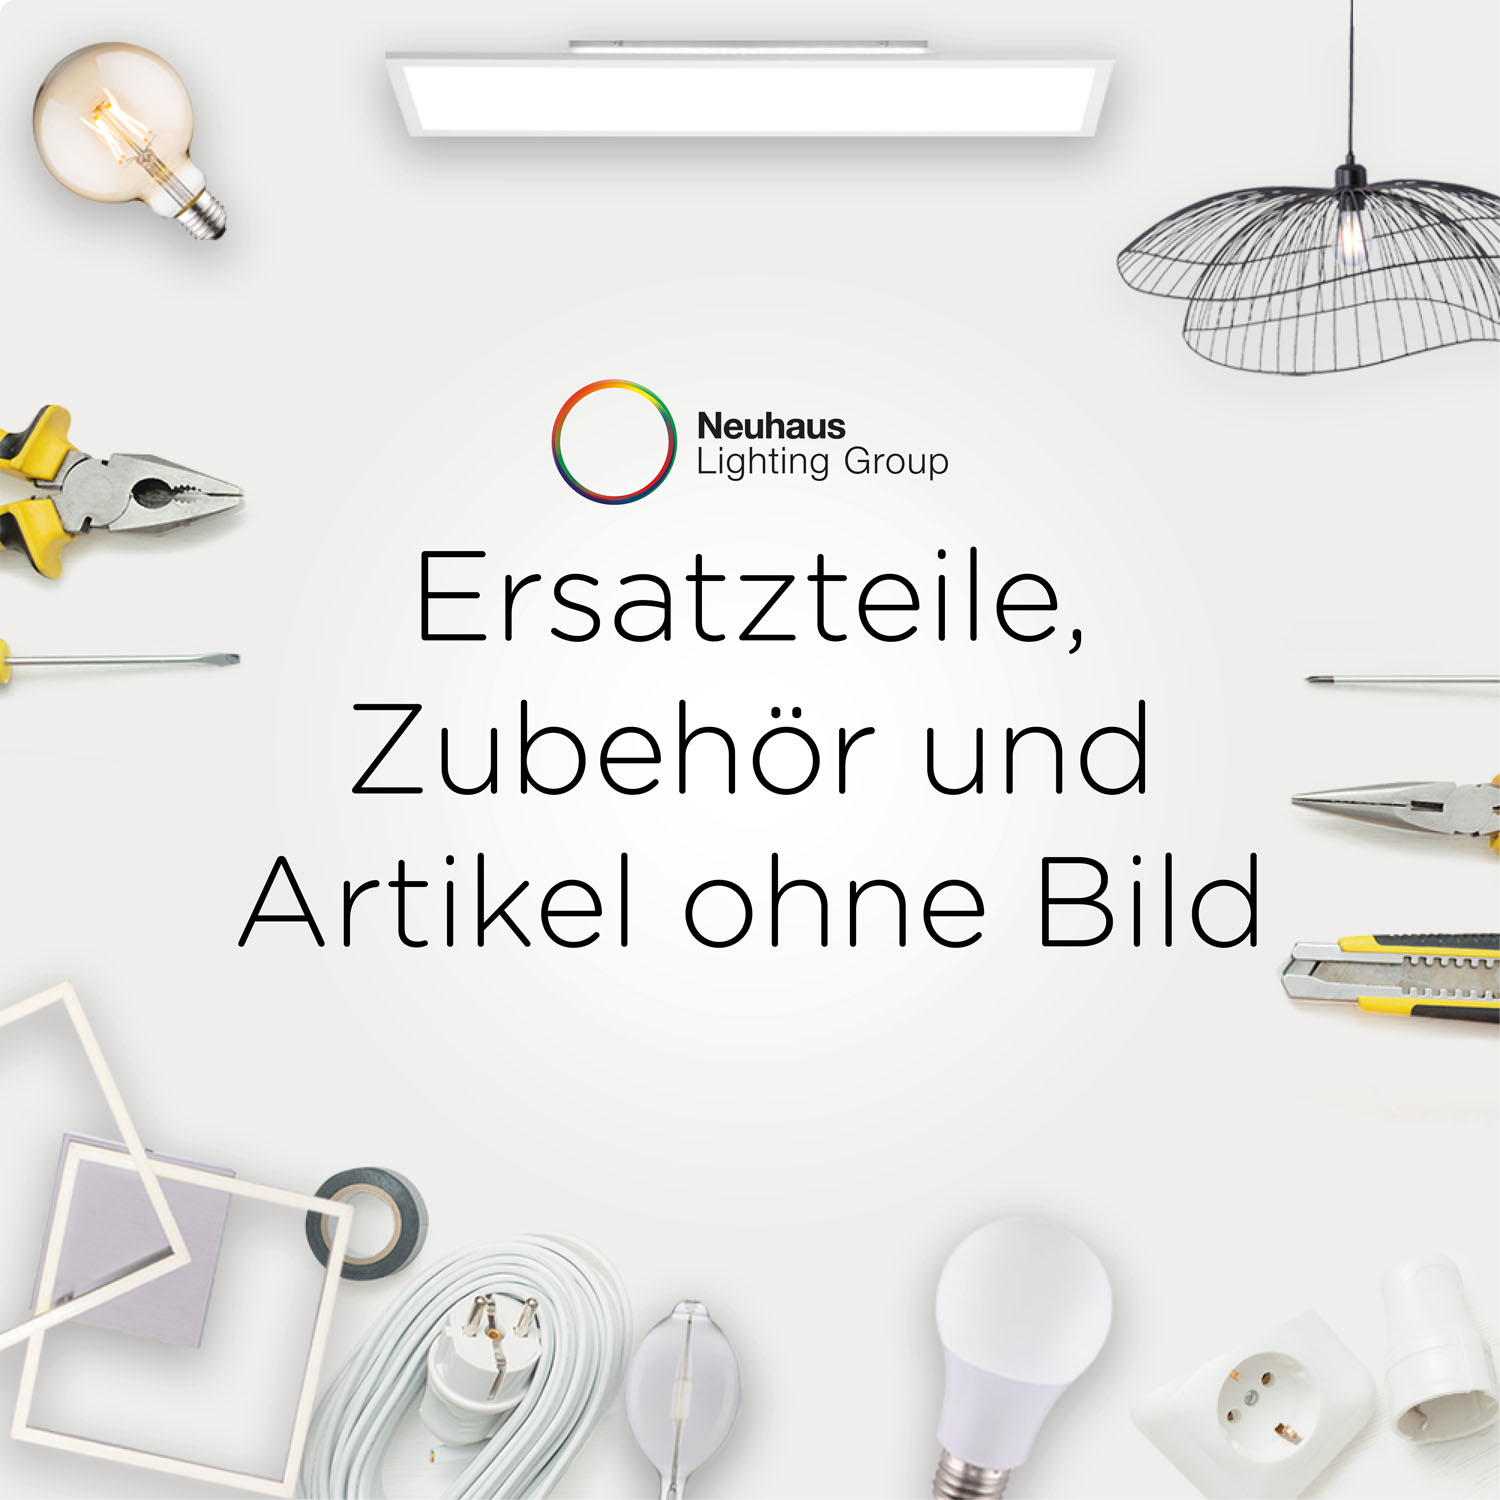 LED Pendelleuchte, chrom, modern, Design